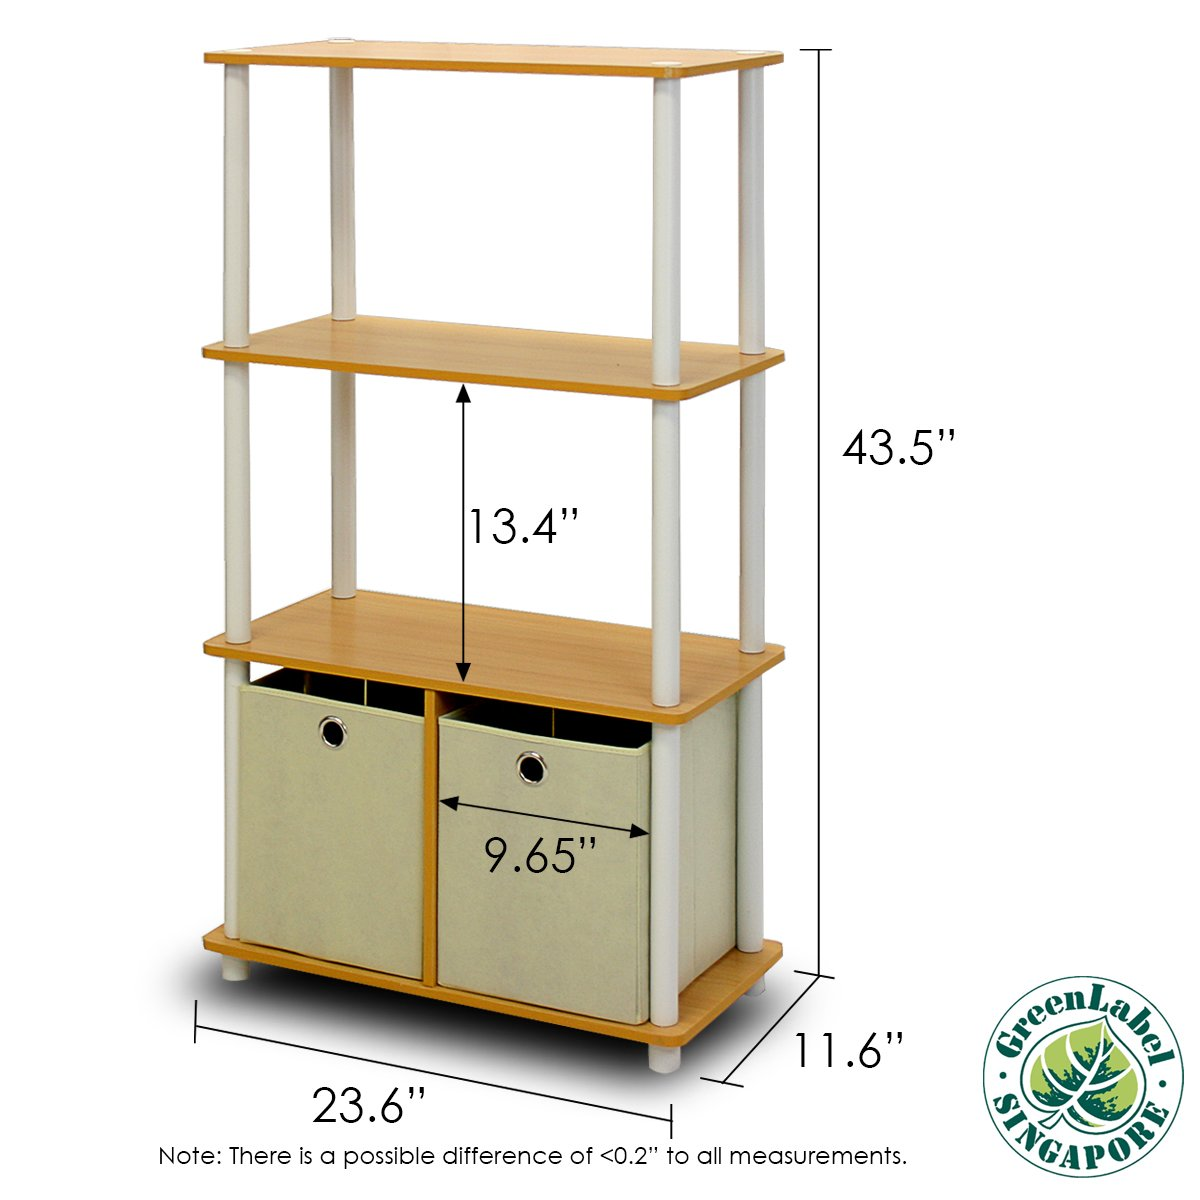 Furinno NW889BE/WH Go Green 4-Tier Multipurpose Storage Rack w/Bins, Beech/White by Furinno (Image #1)